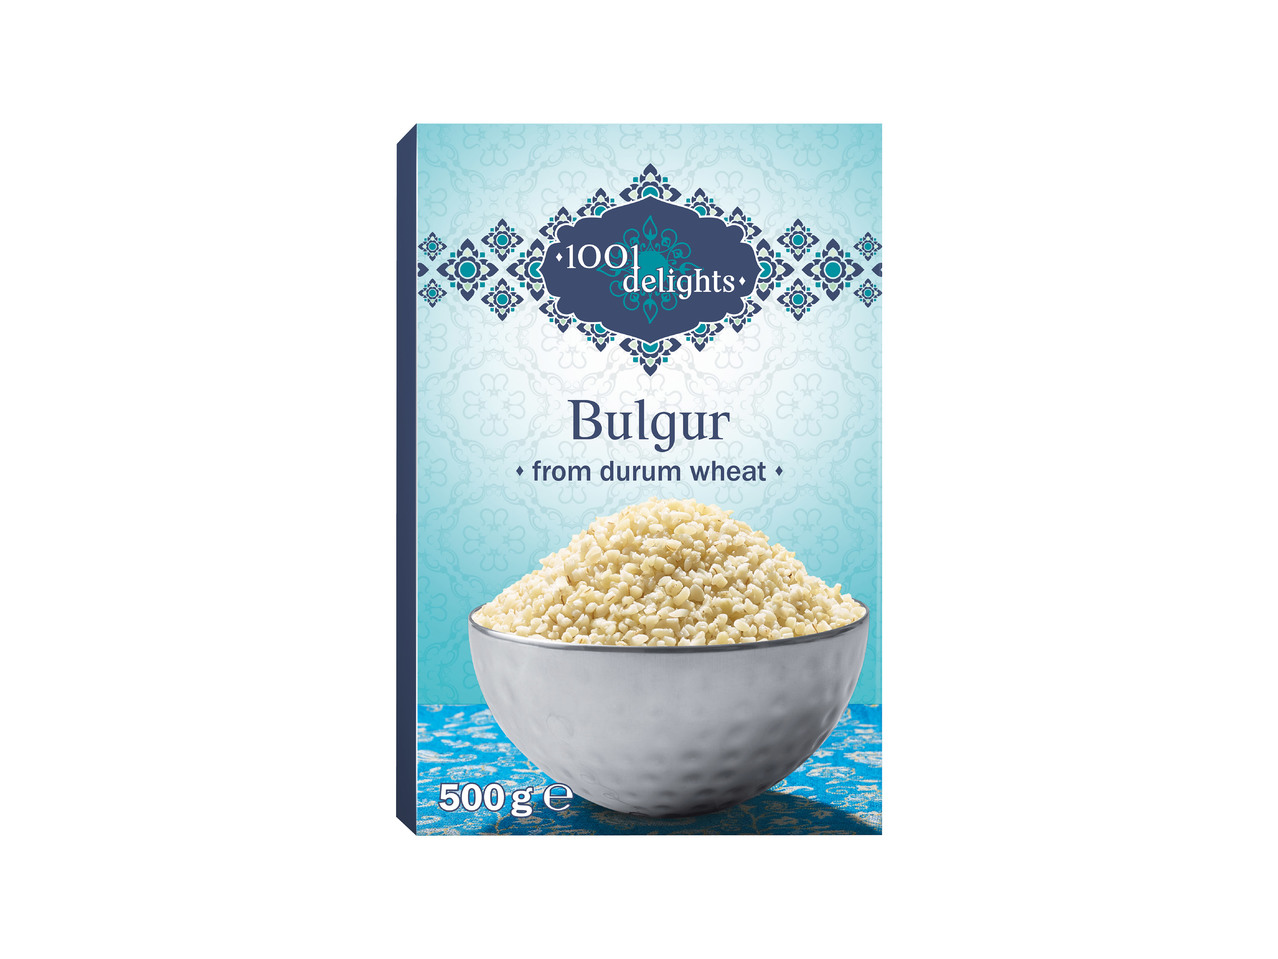 Bulgur 1001 delights